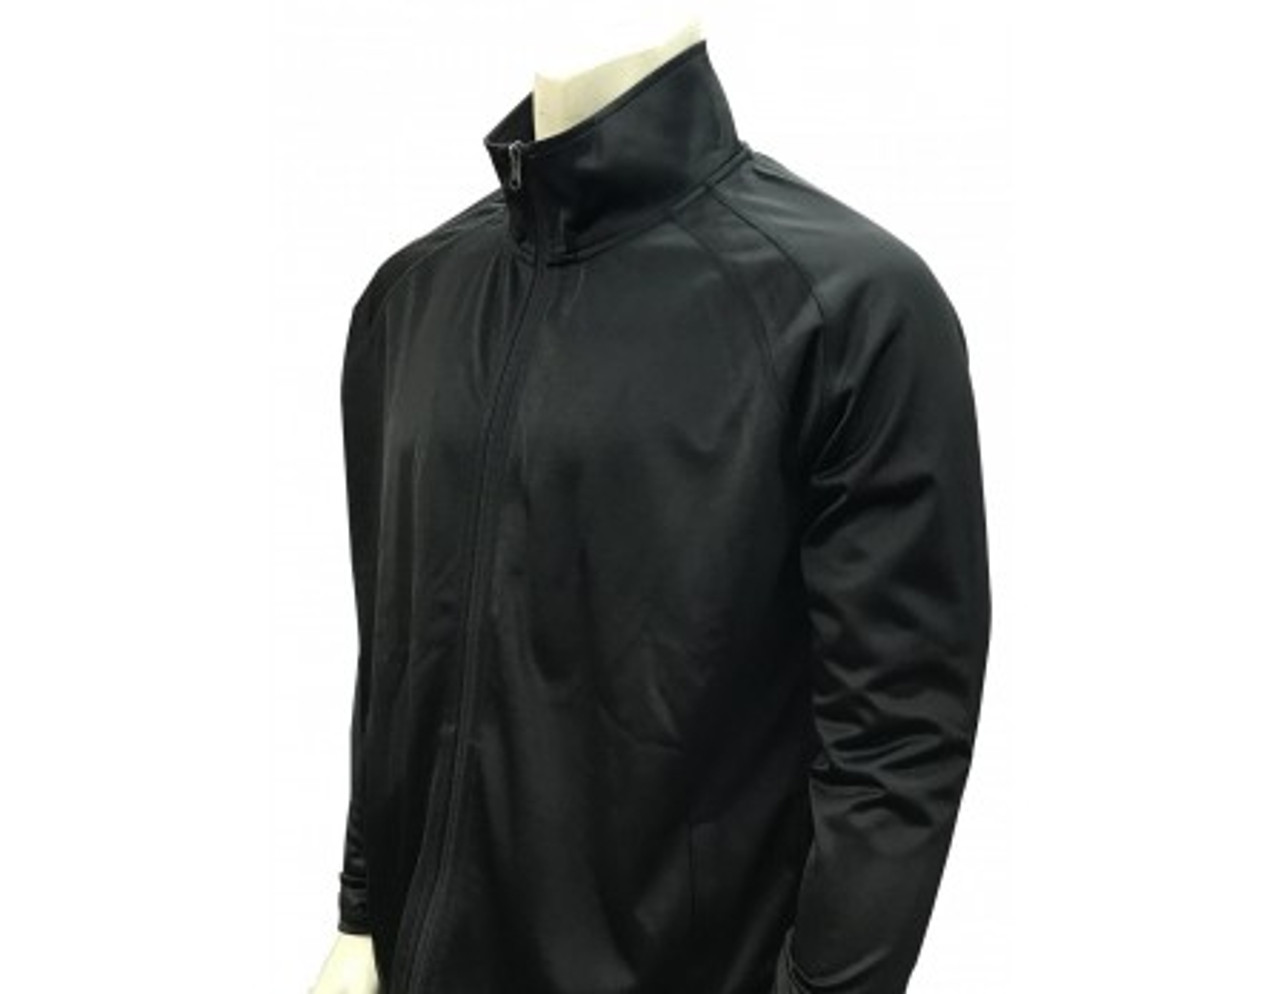 Black Referee Pregame Jacket with Cadet Collar